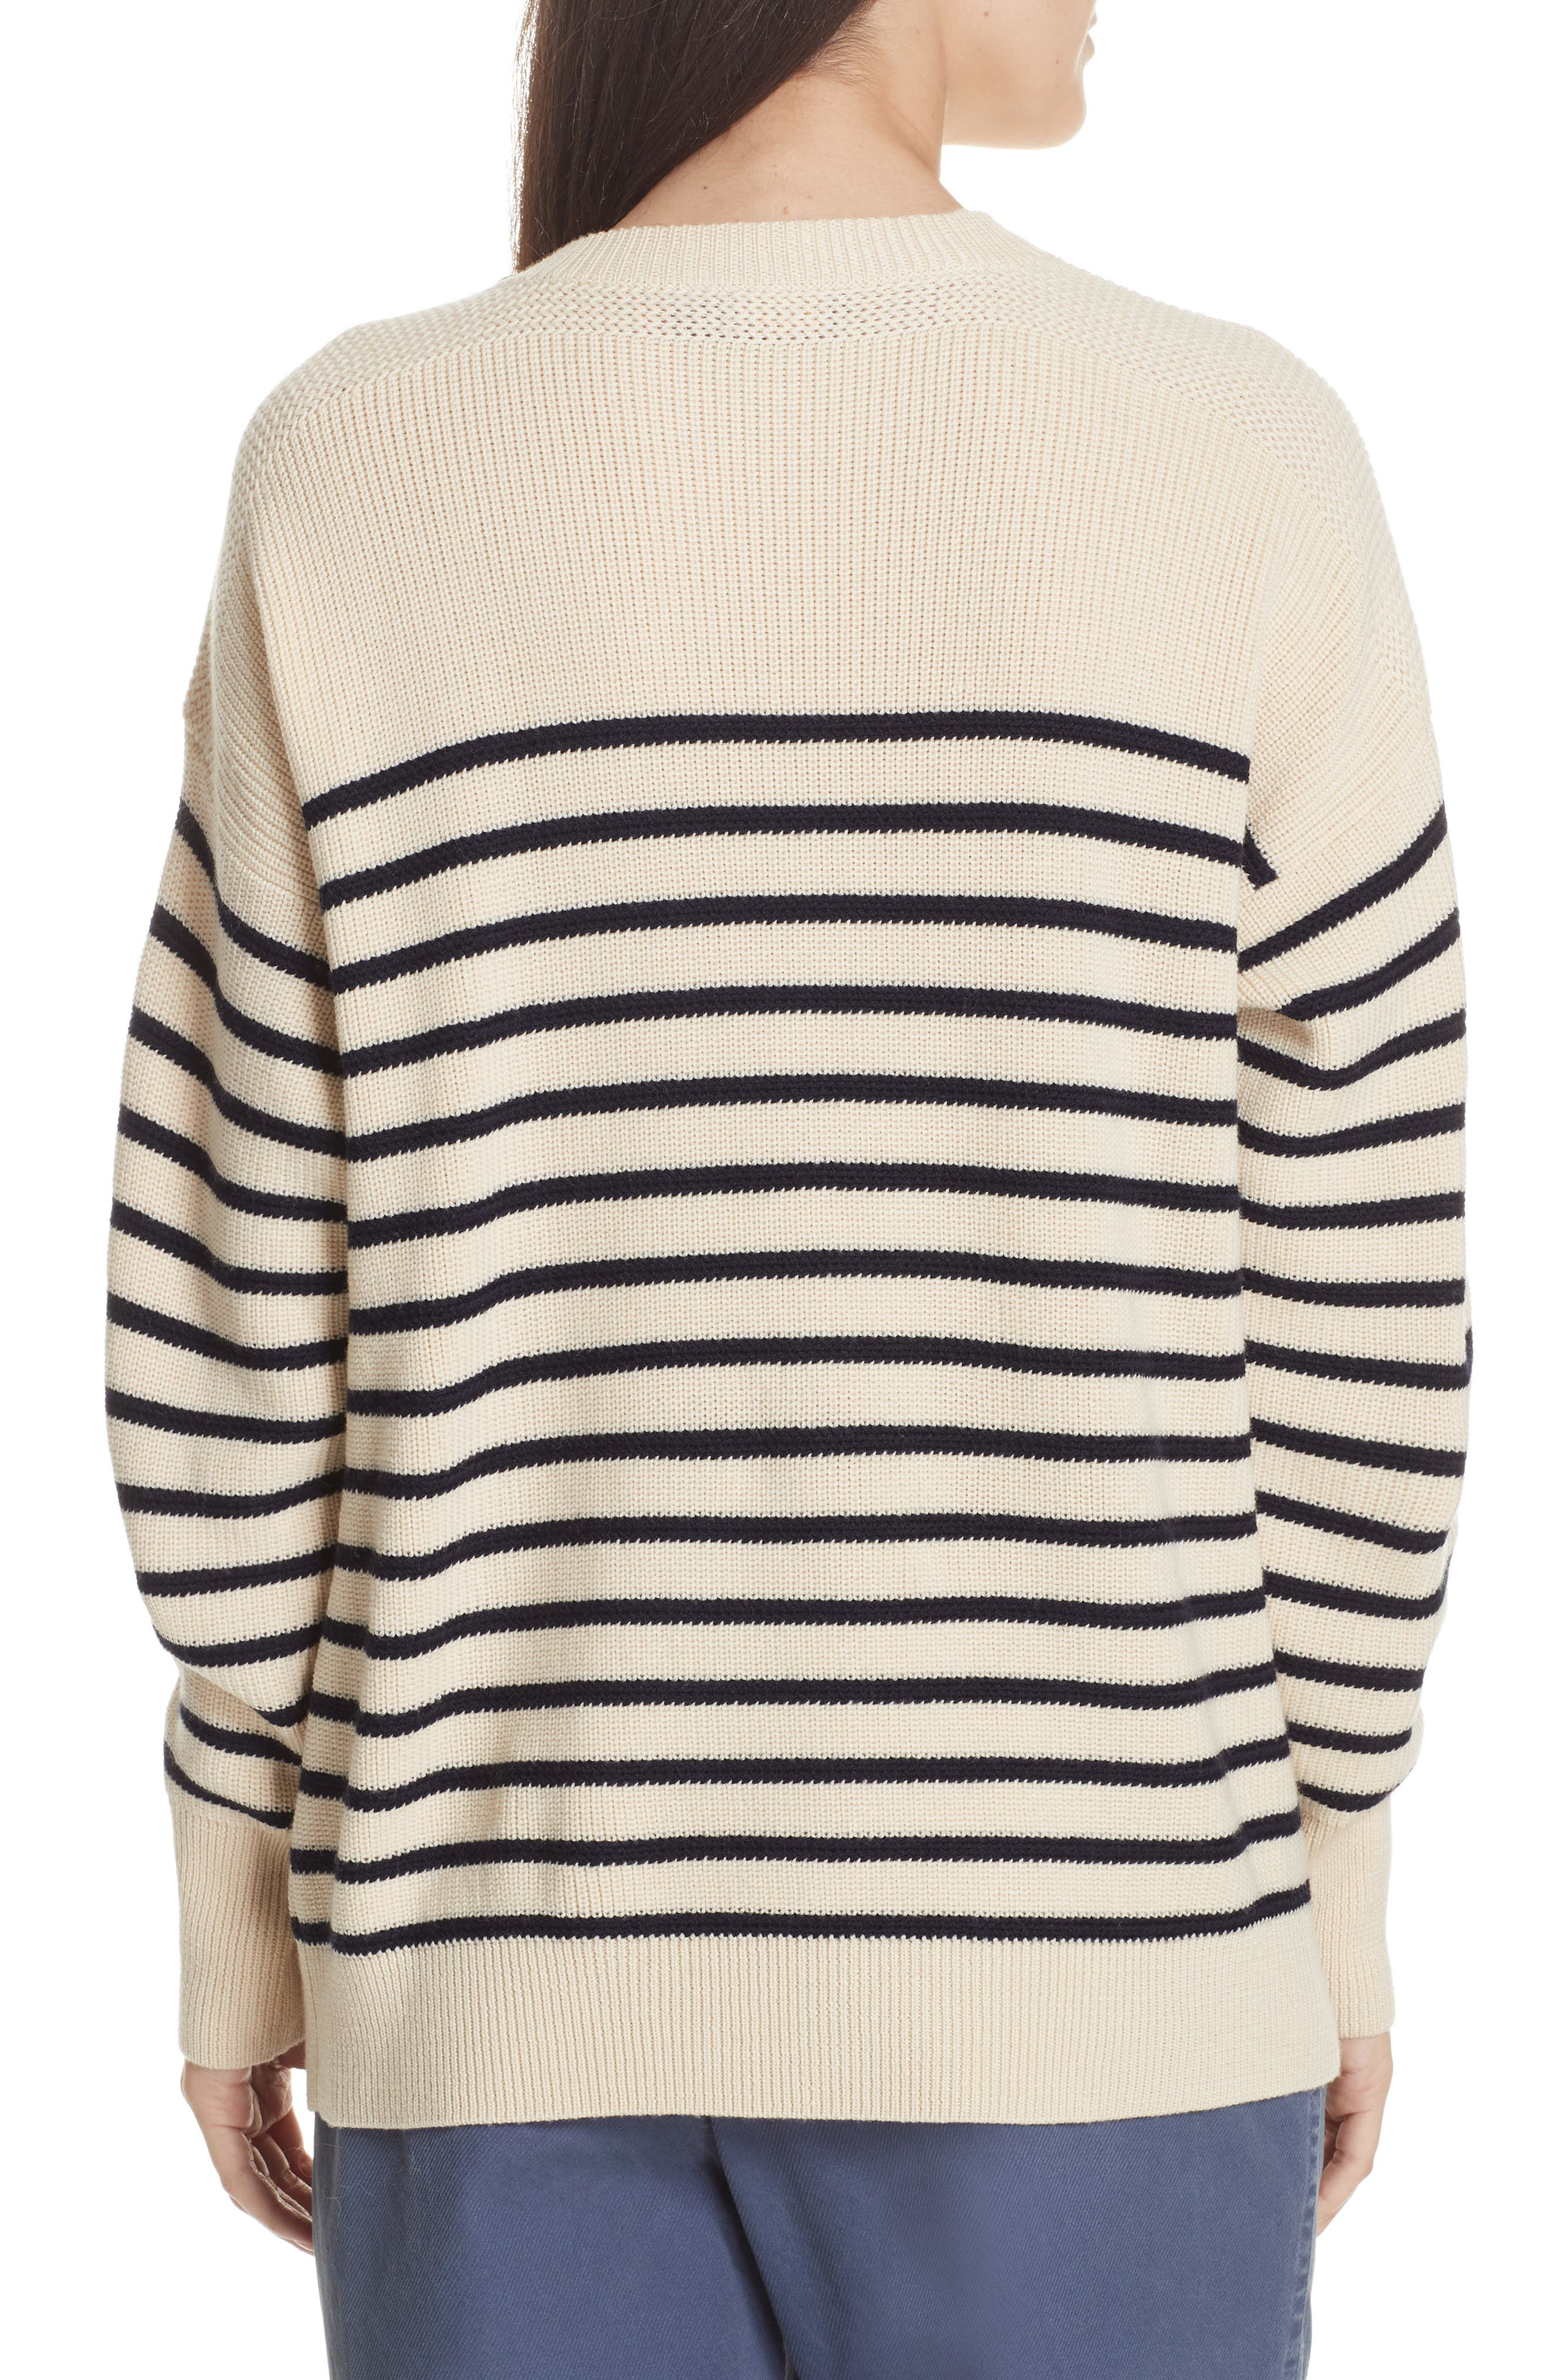 Stripe Wool Sweater,                             Alternate thumbnail 3, color,                             CREAM/ NAVY